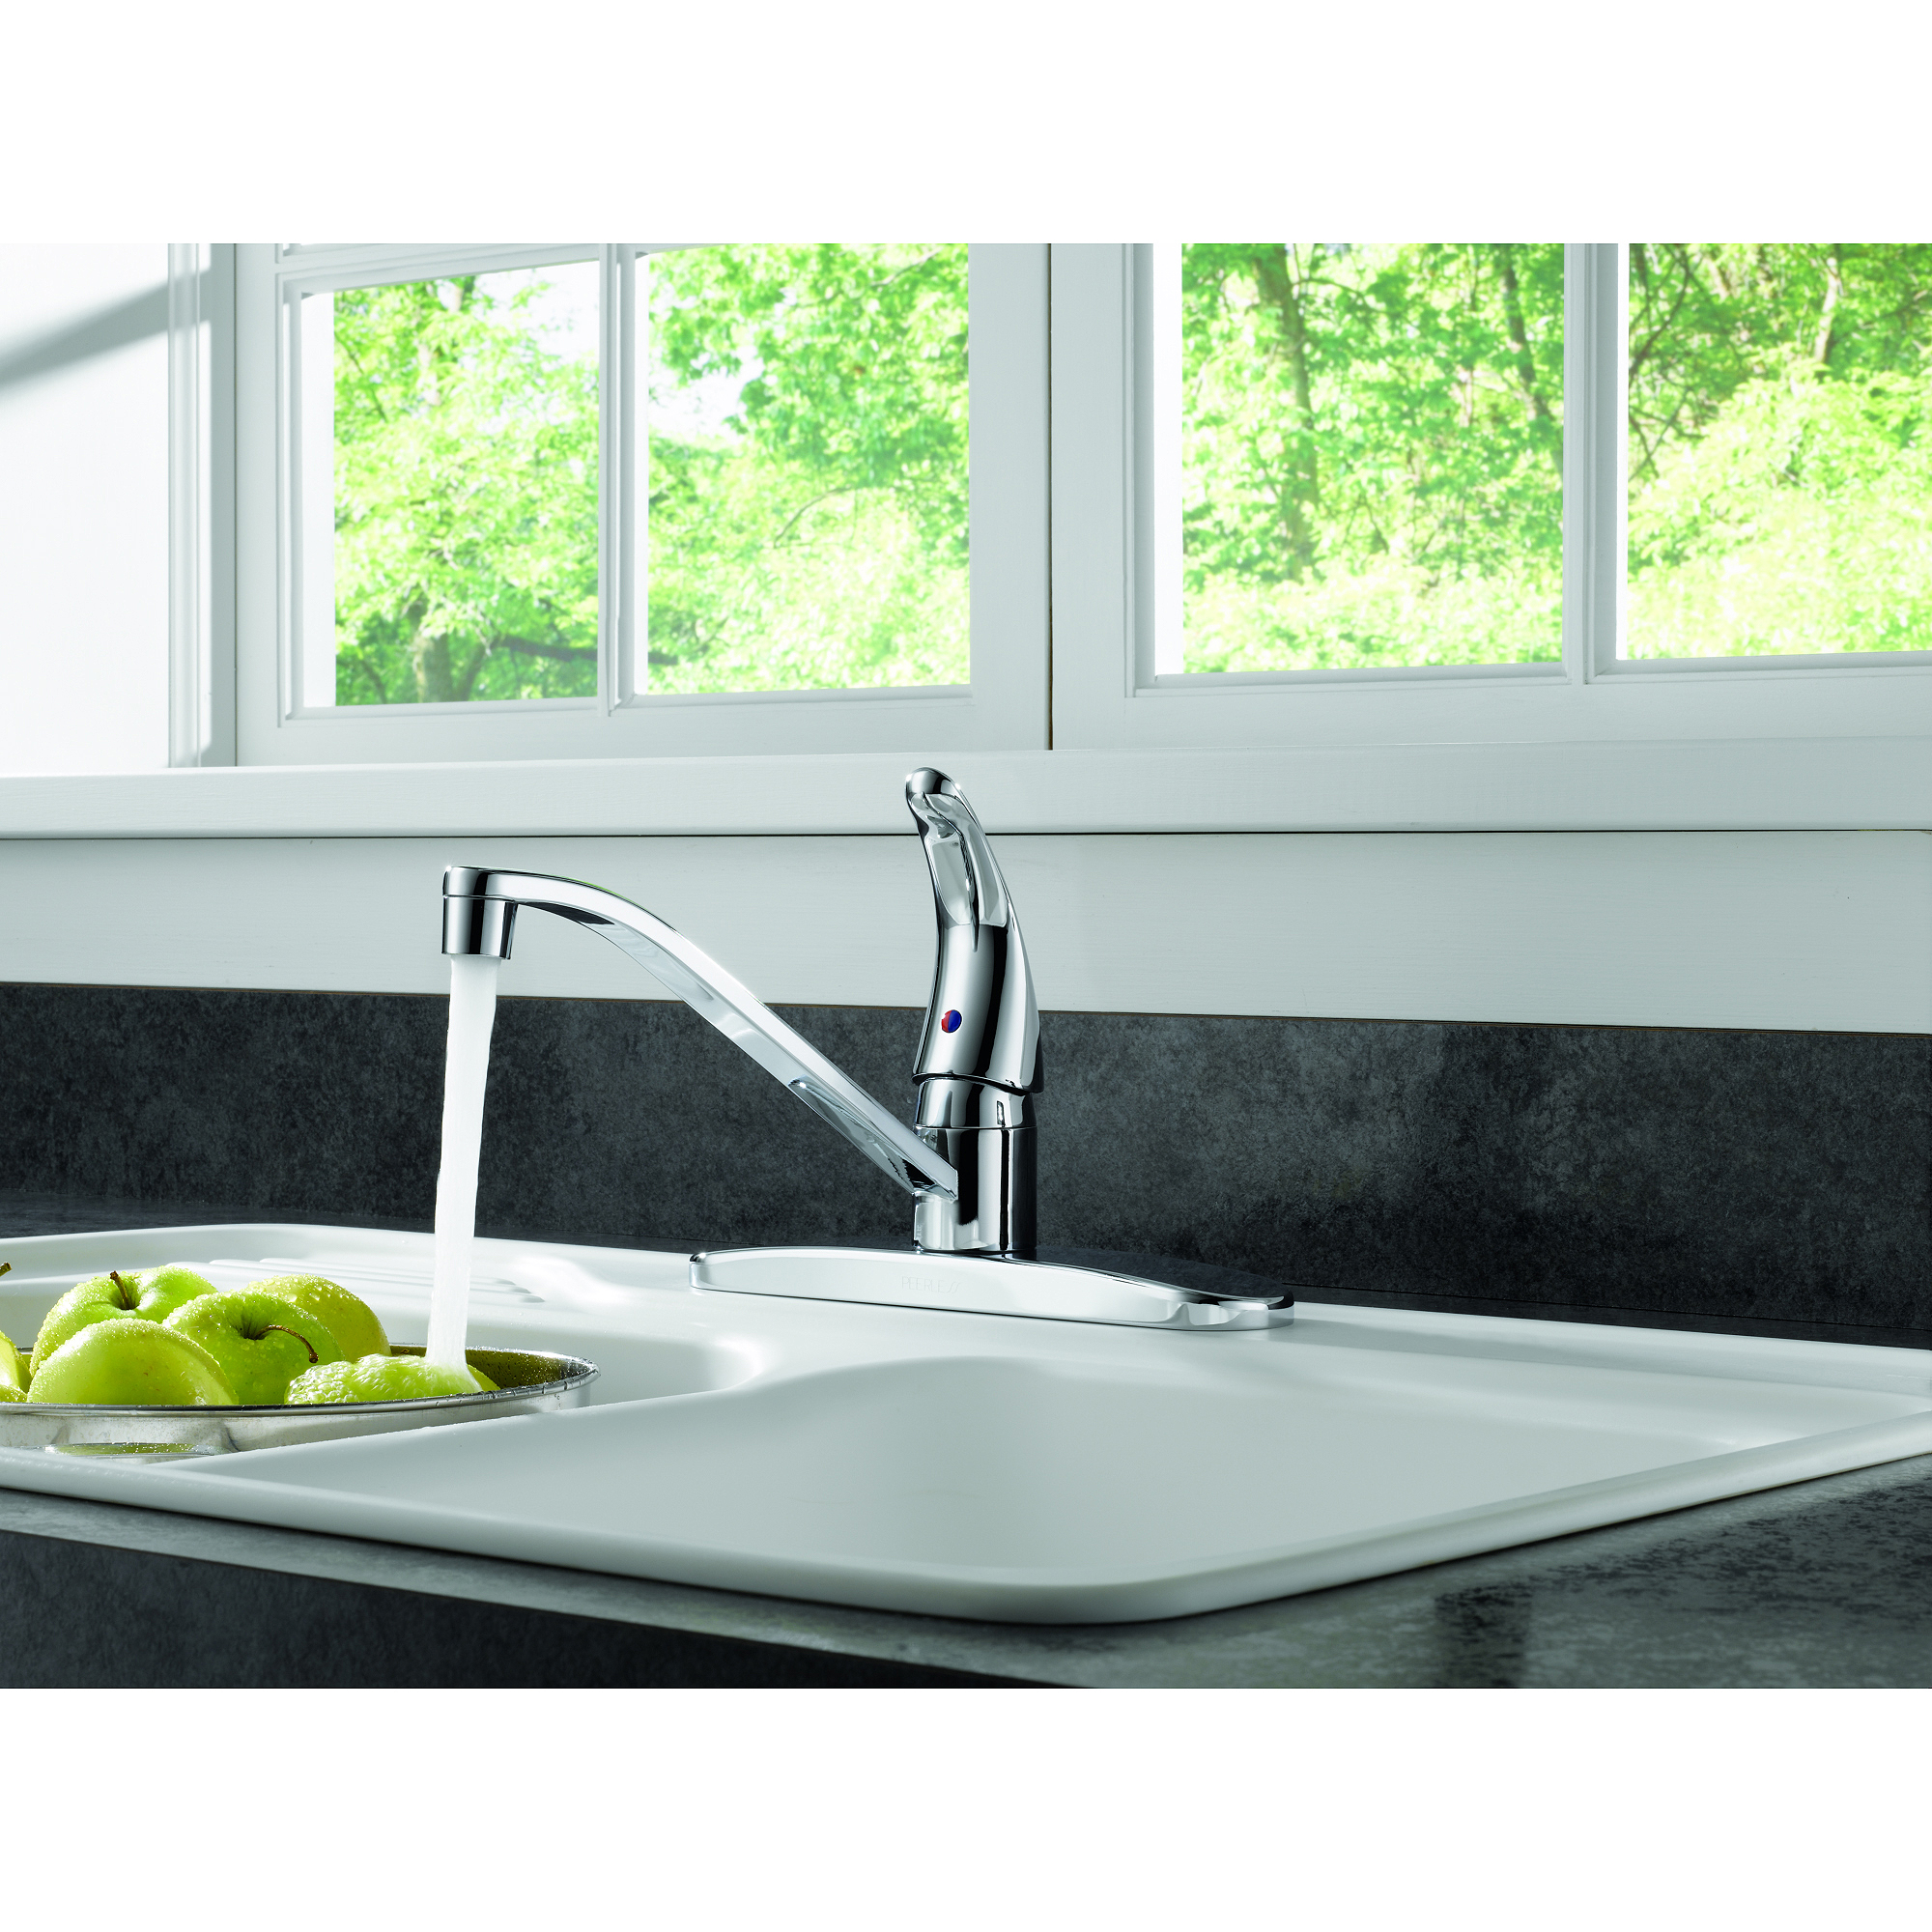 peerless single handle kitchen faucet with single lever control